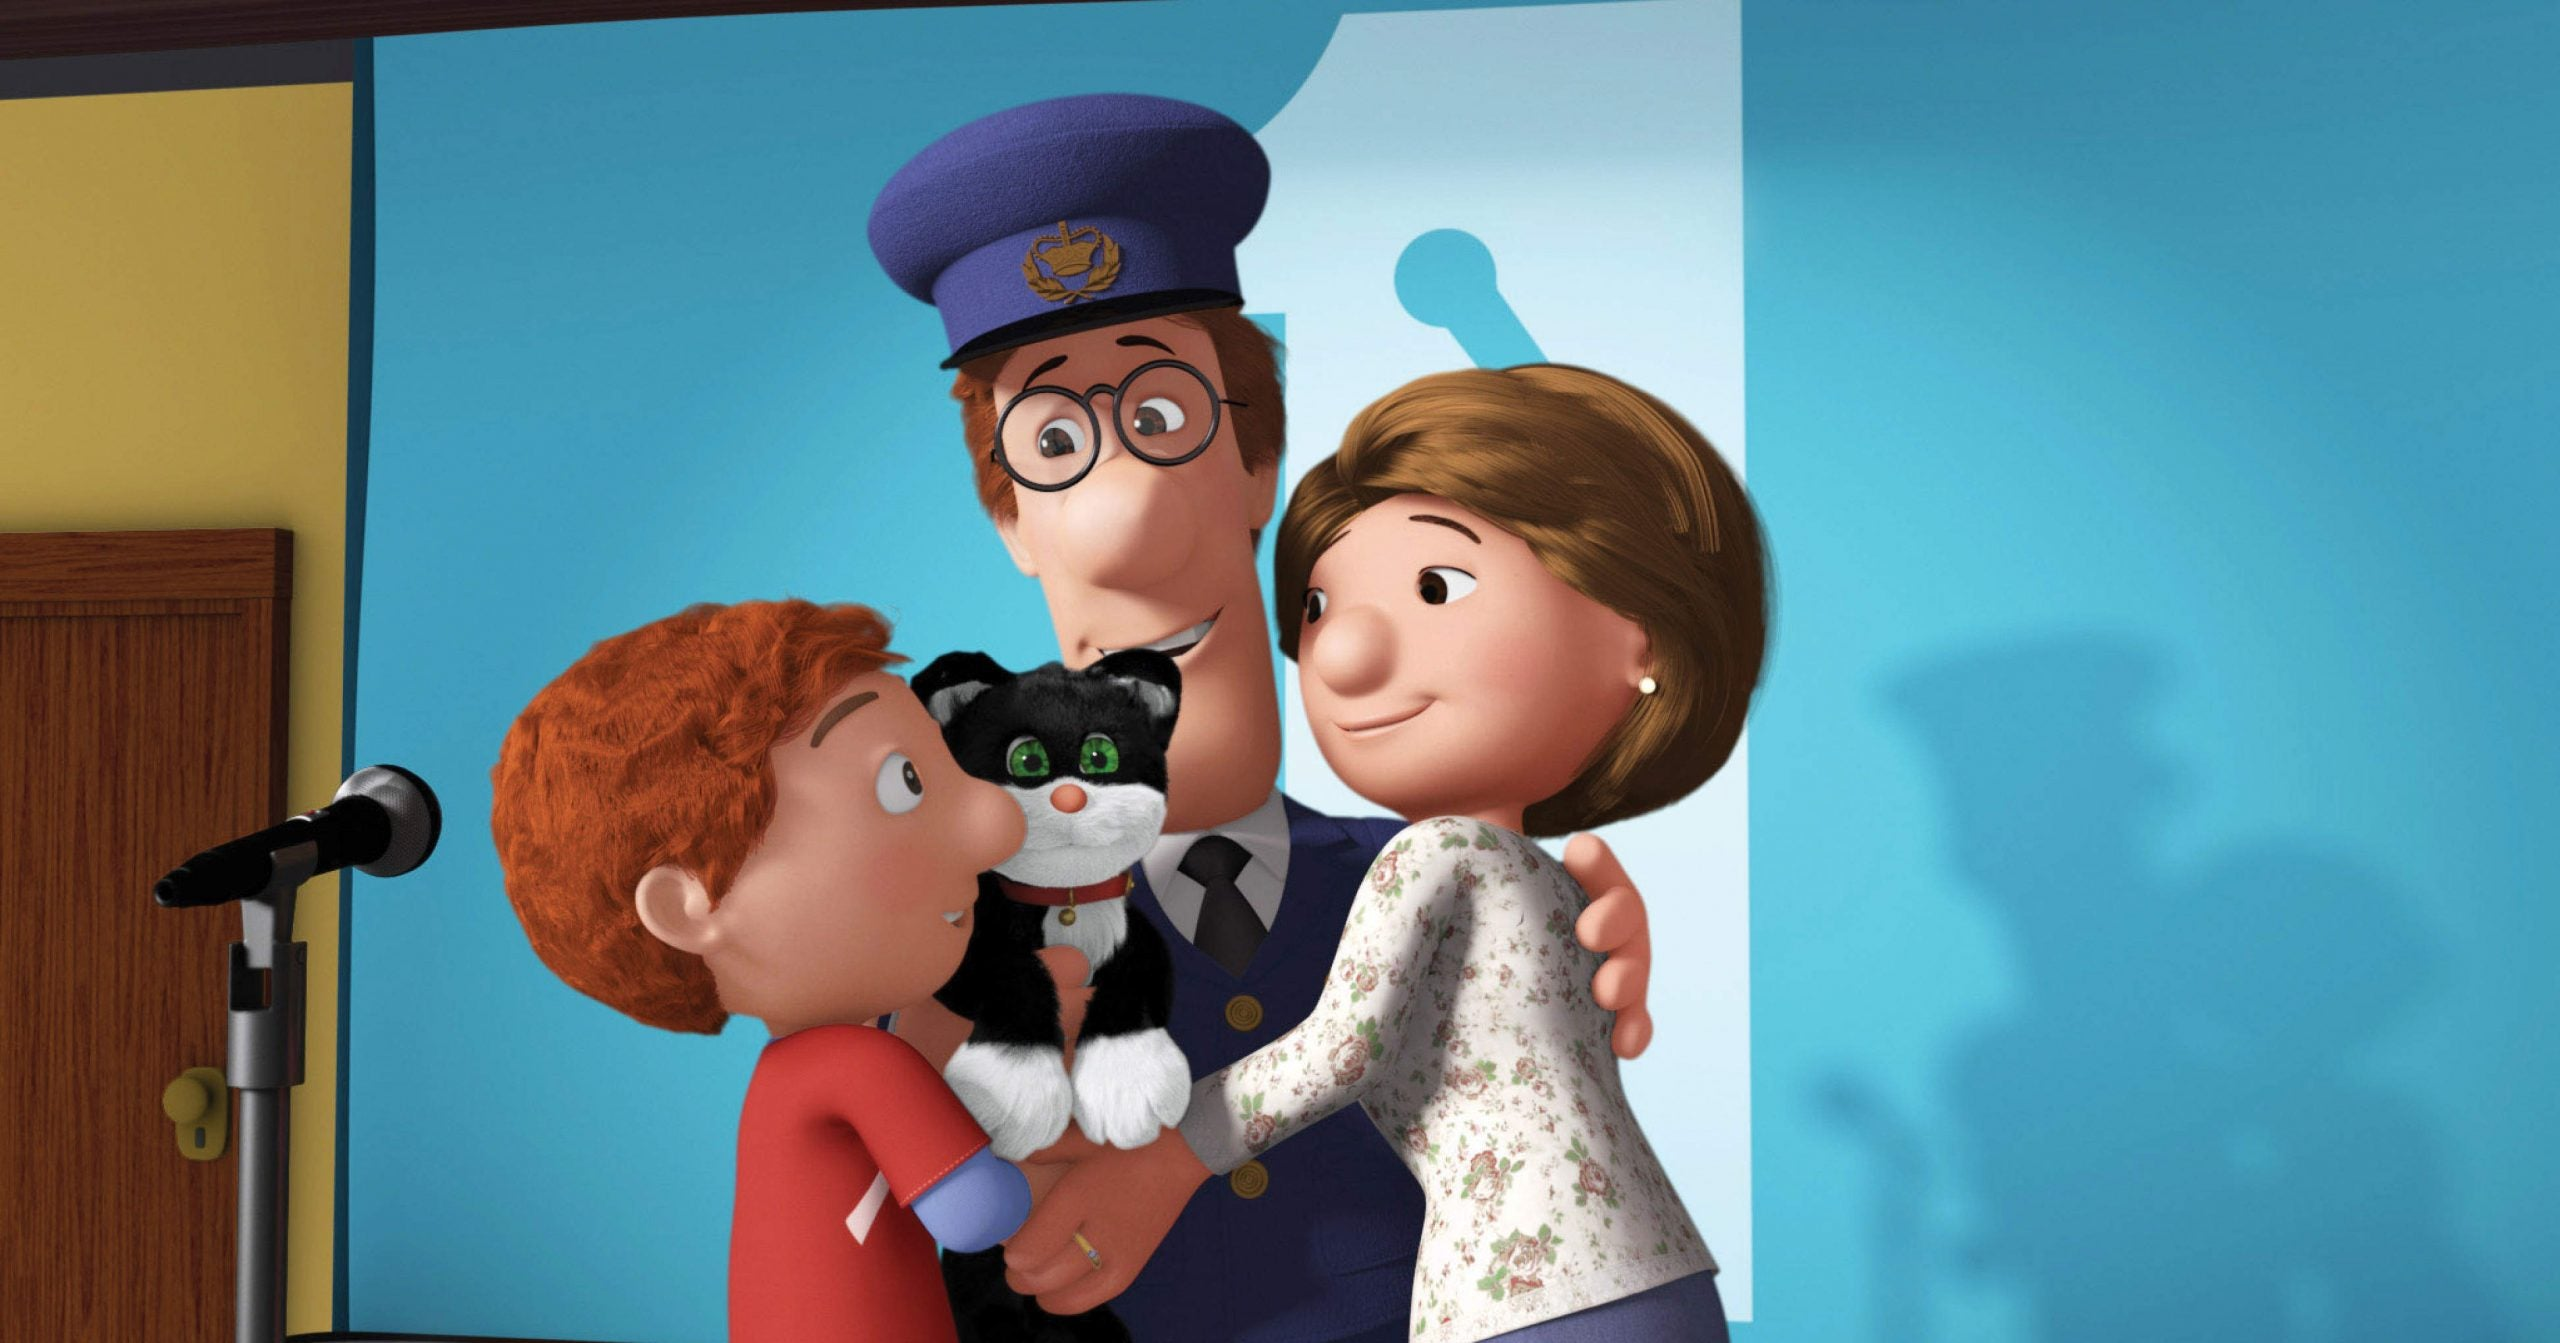 What Postman Pat tells us about letters, parcels, and happiness